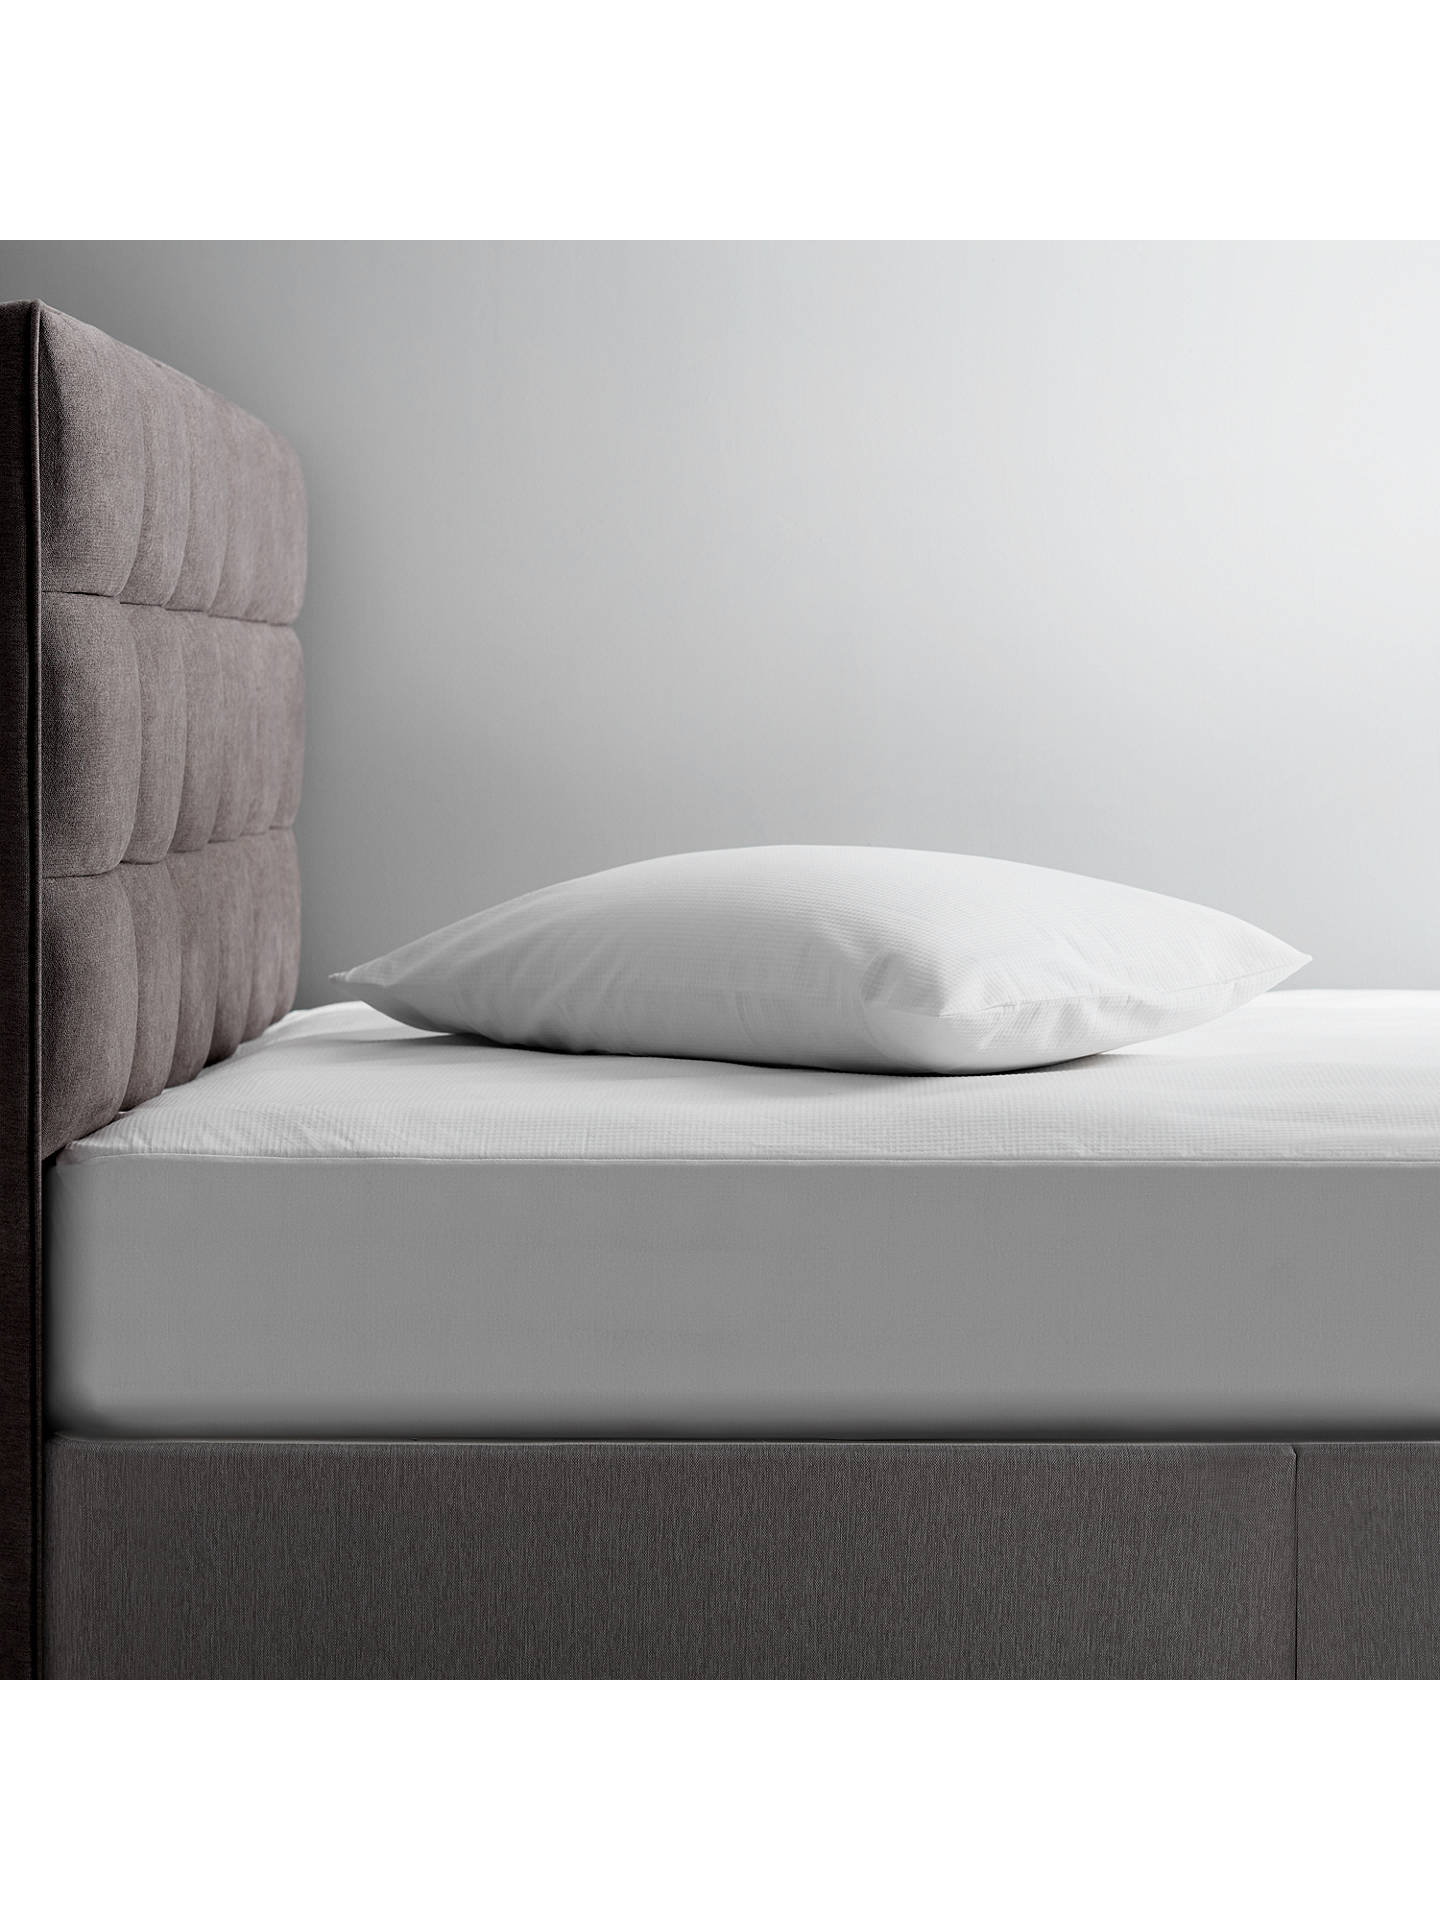 Buy Tempur Water Resistant Mattress Protector, White, Depth 21-30cm Online at johnlewis.com